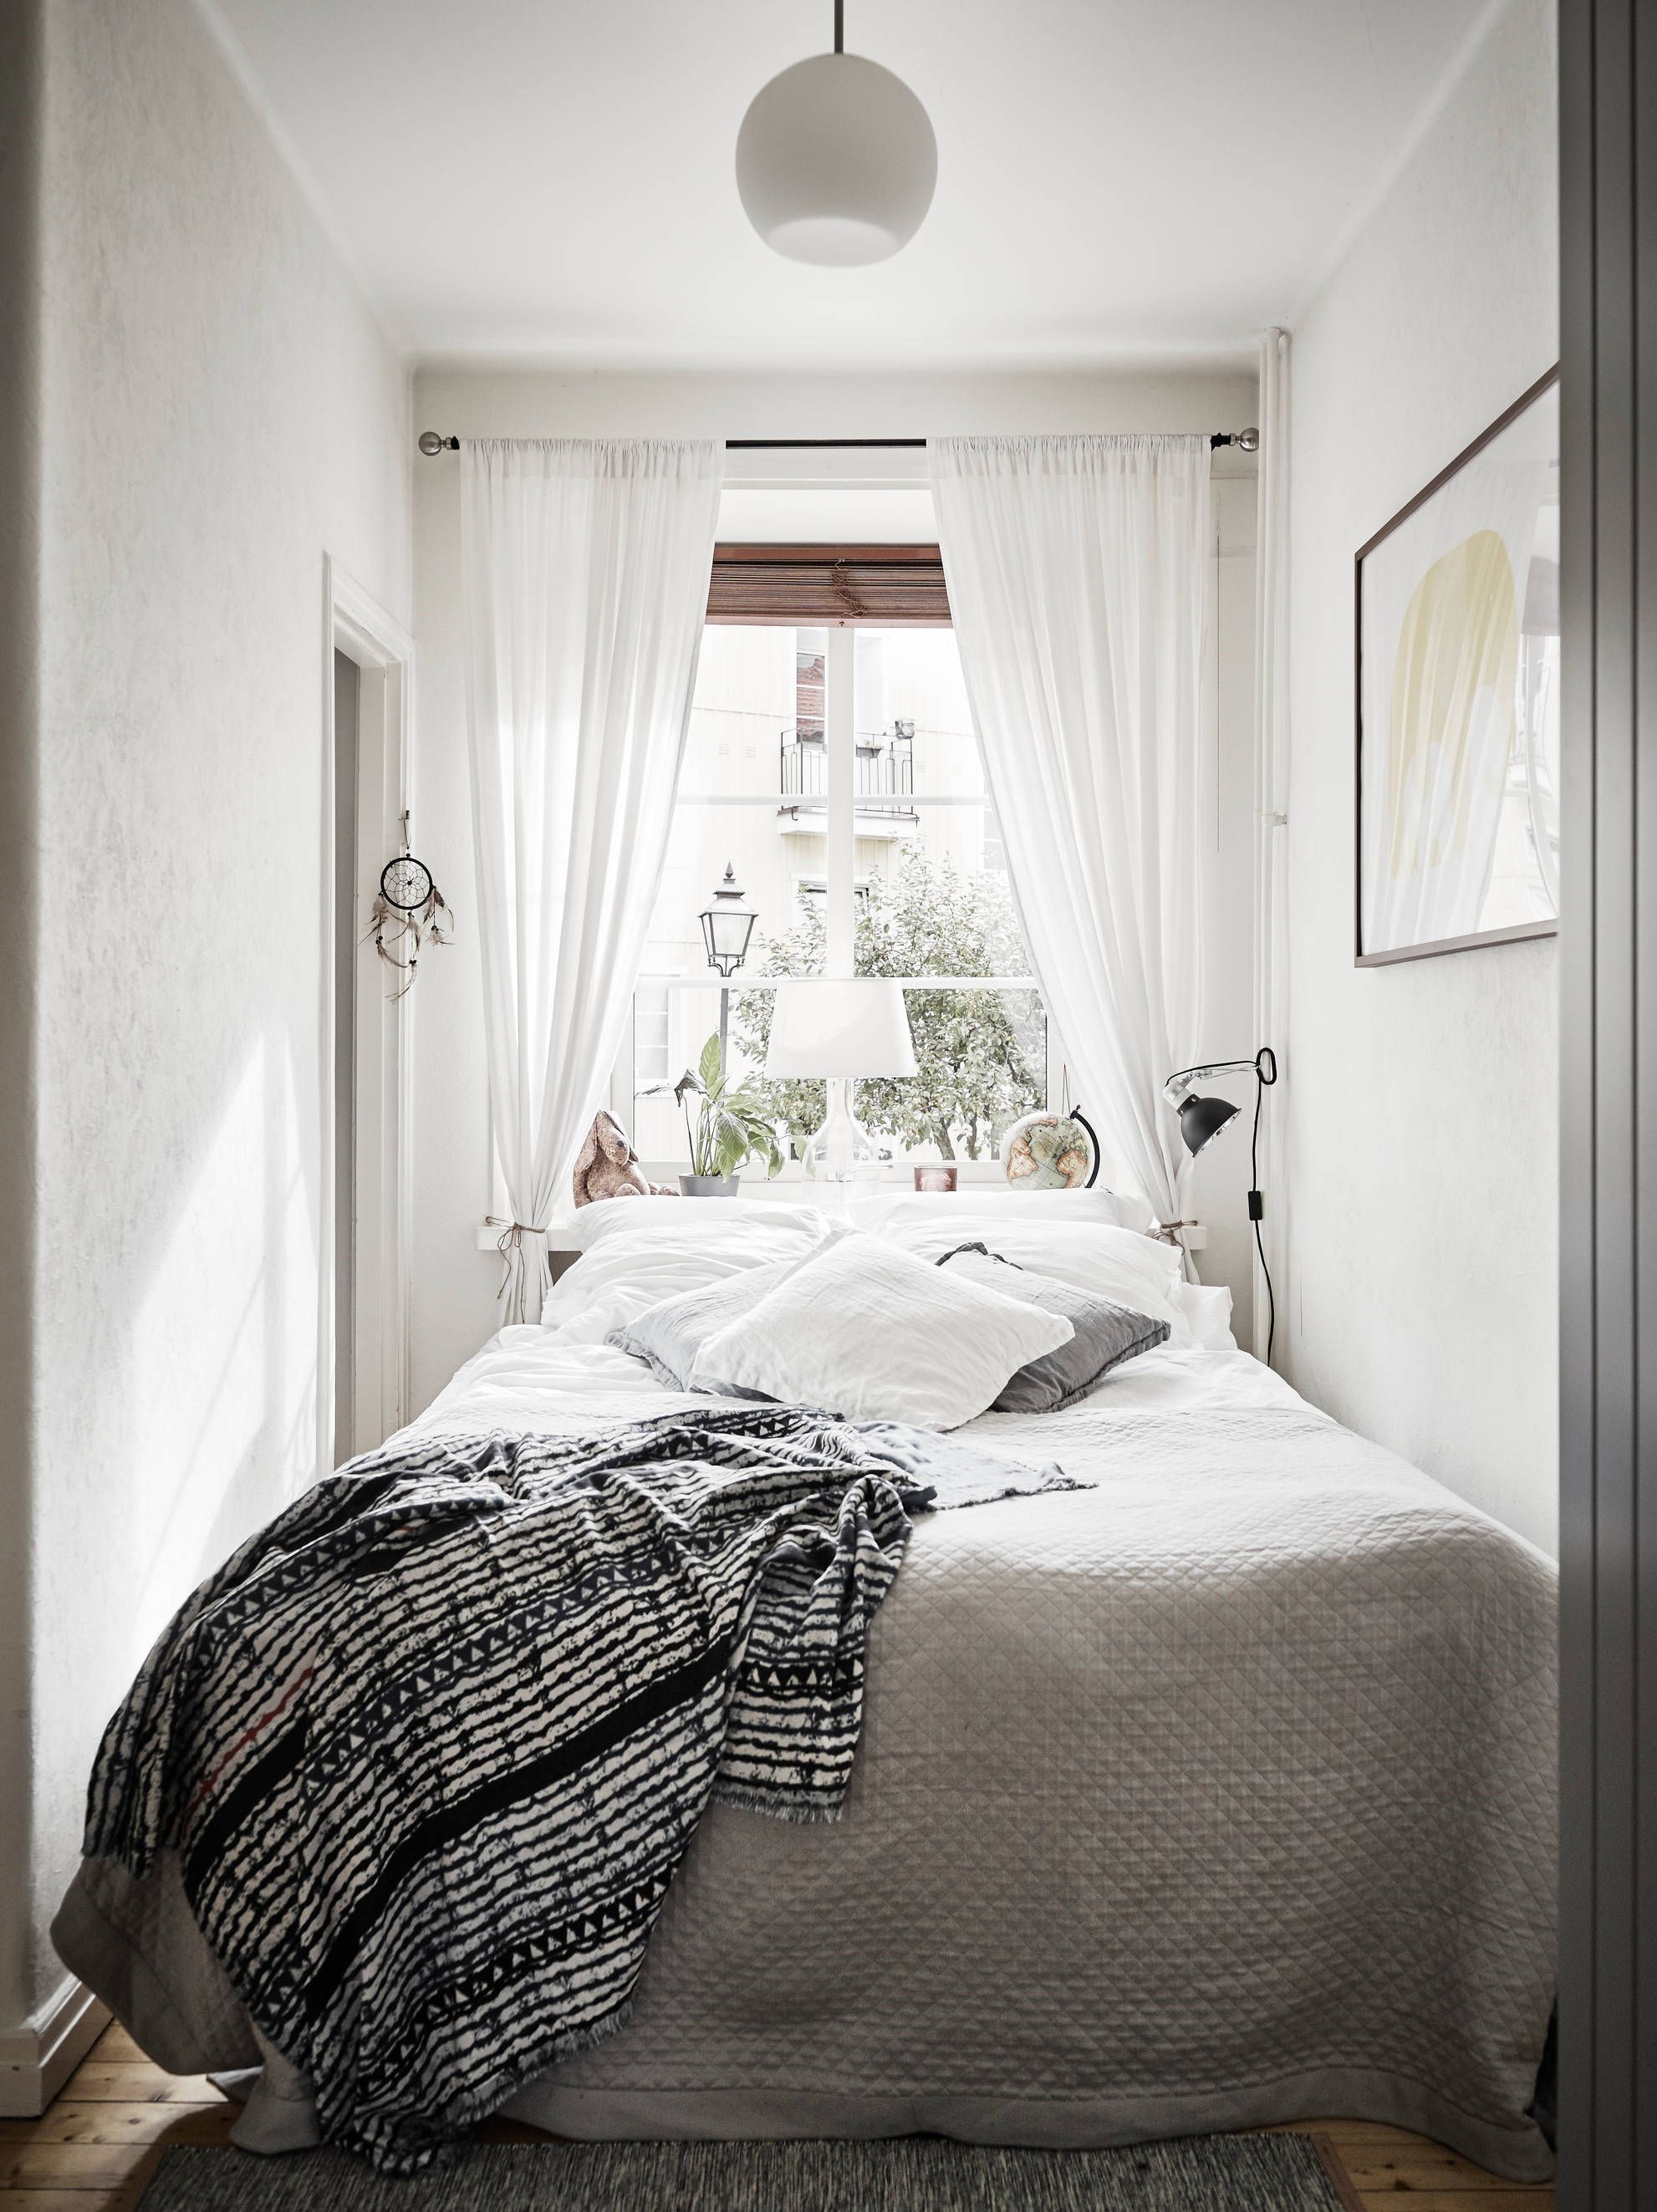 40+ Space-Saving Ideas For Small Bedrooms images